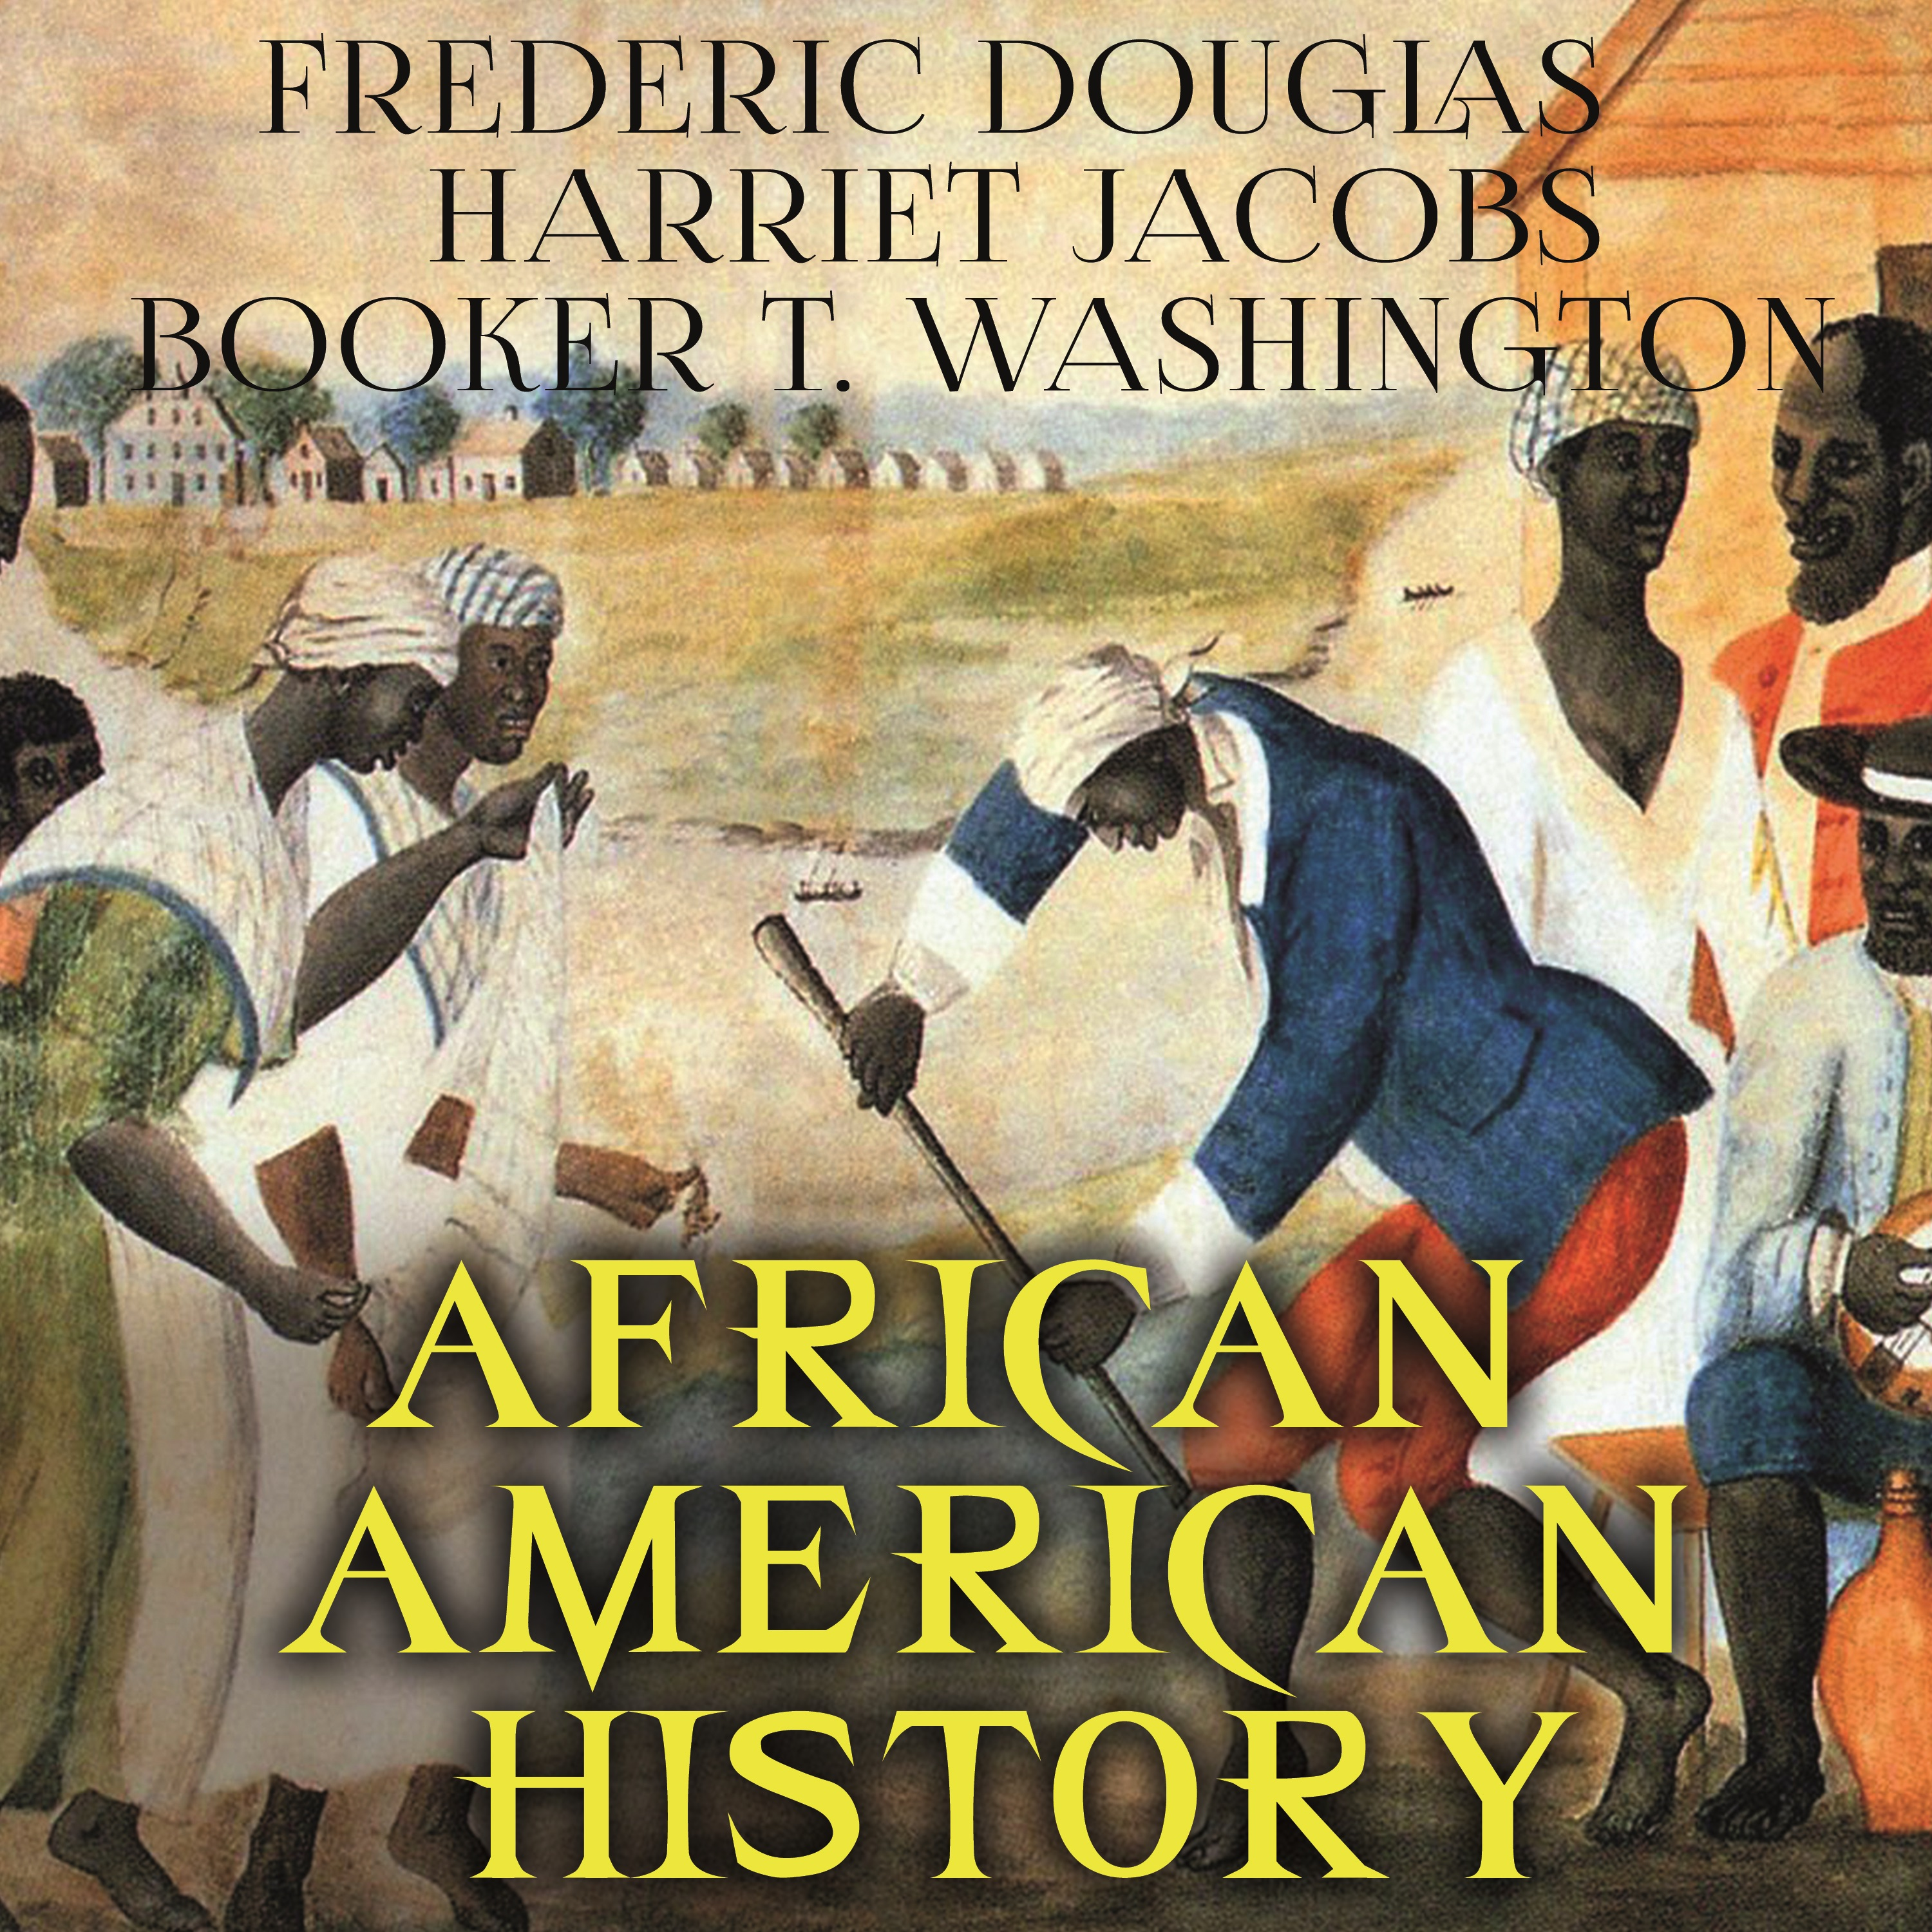 Harriet Ann Jacobs African American History booker t washington the story of slavery